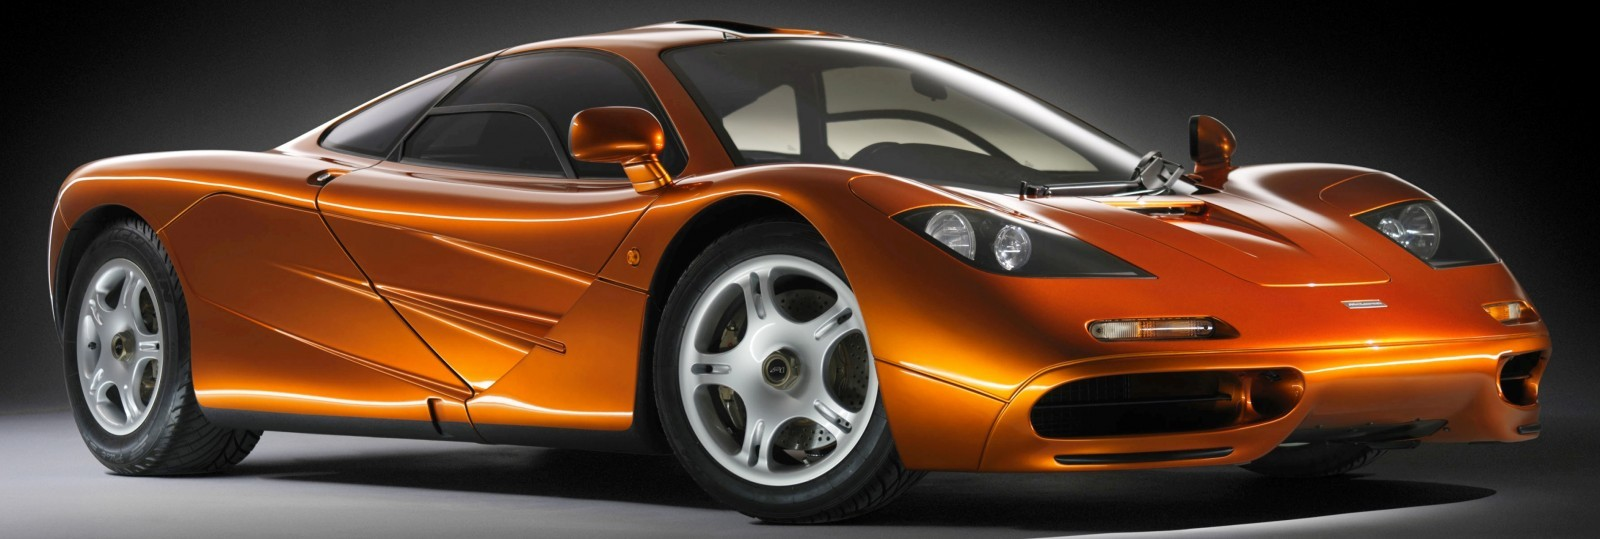 CarRevsDaily - Supercar Legends - McLaren F1 Wallpaper 41